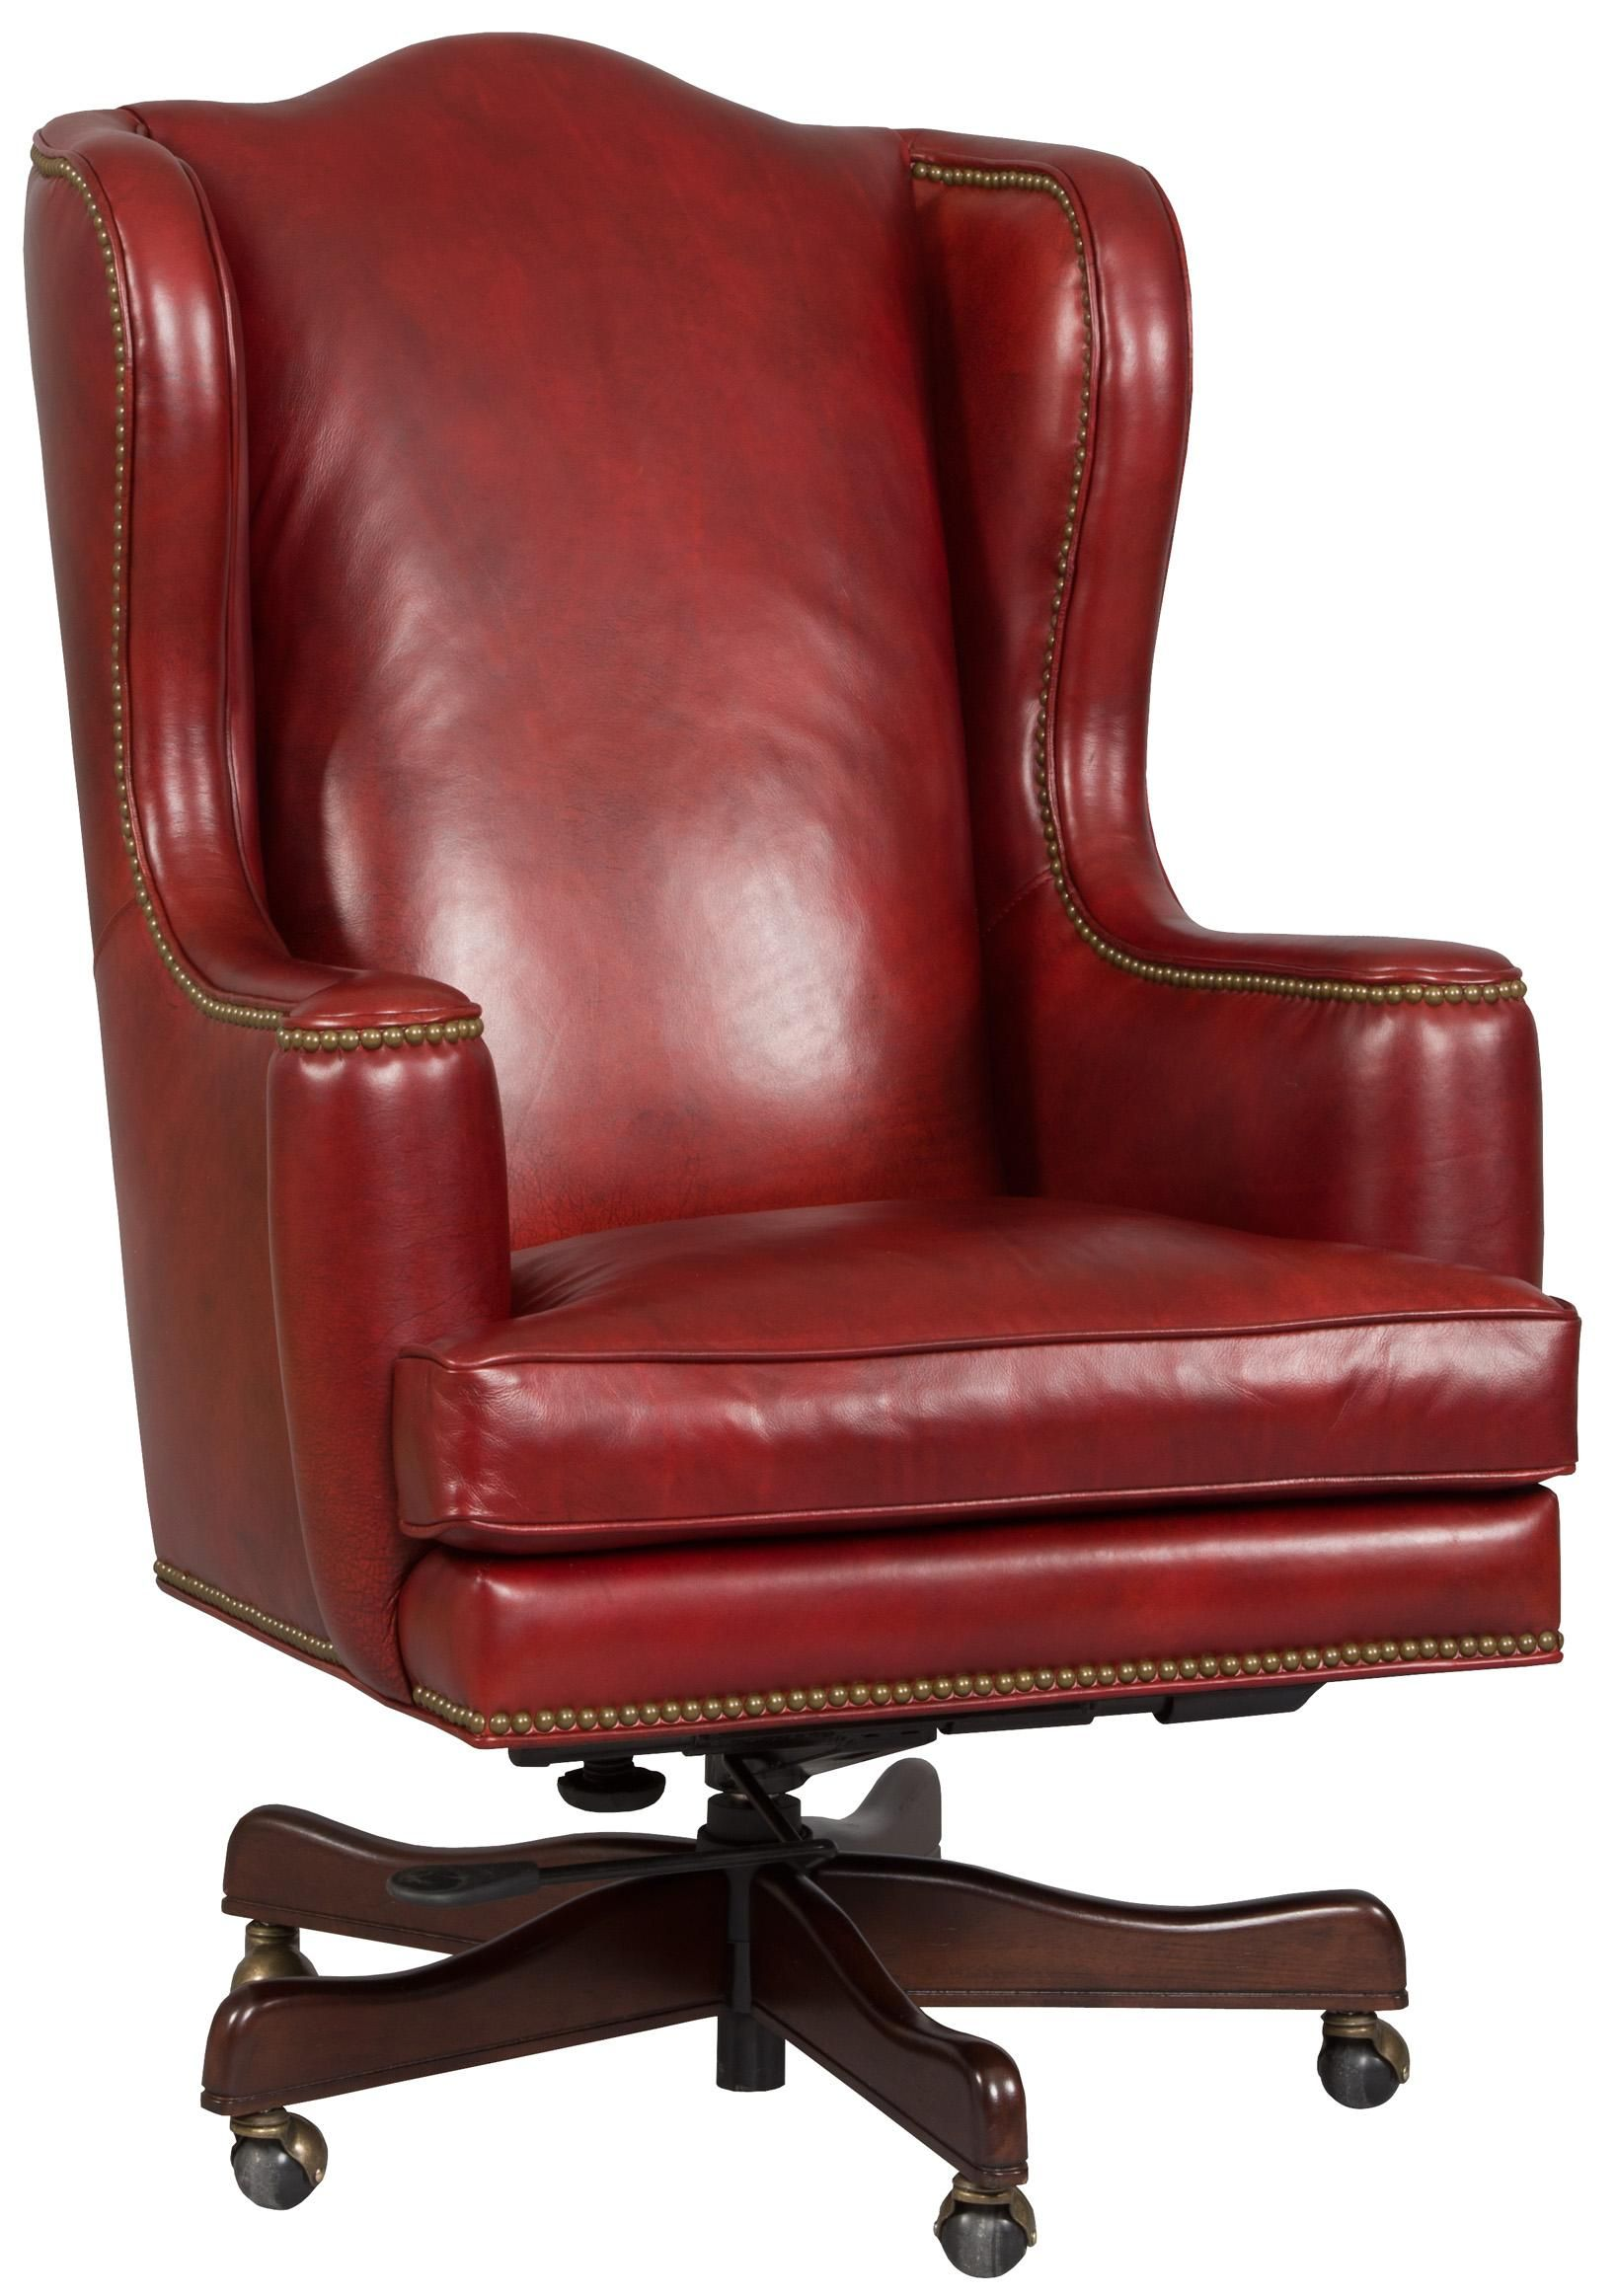 Executive Seating Executive Swivel Tilt Chair by Seven